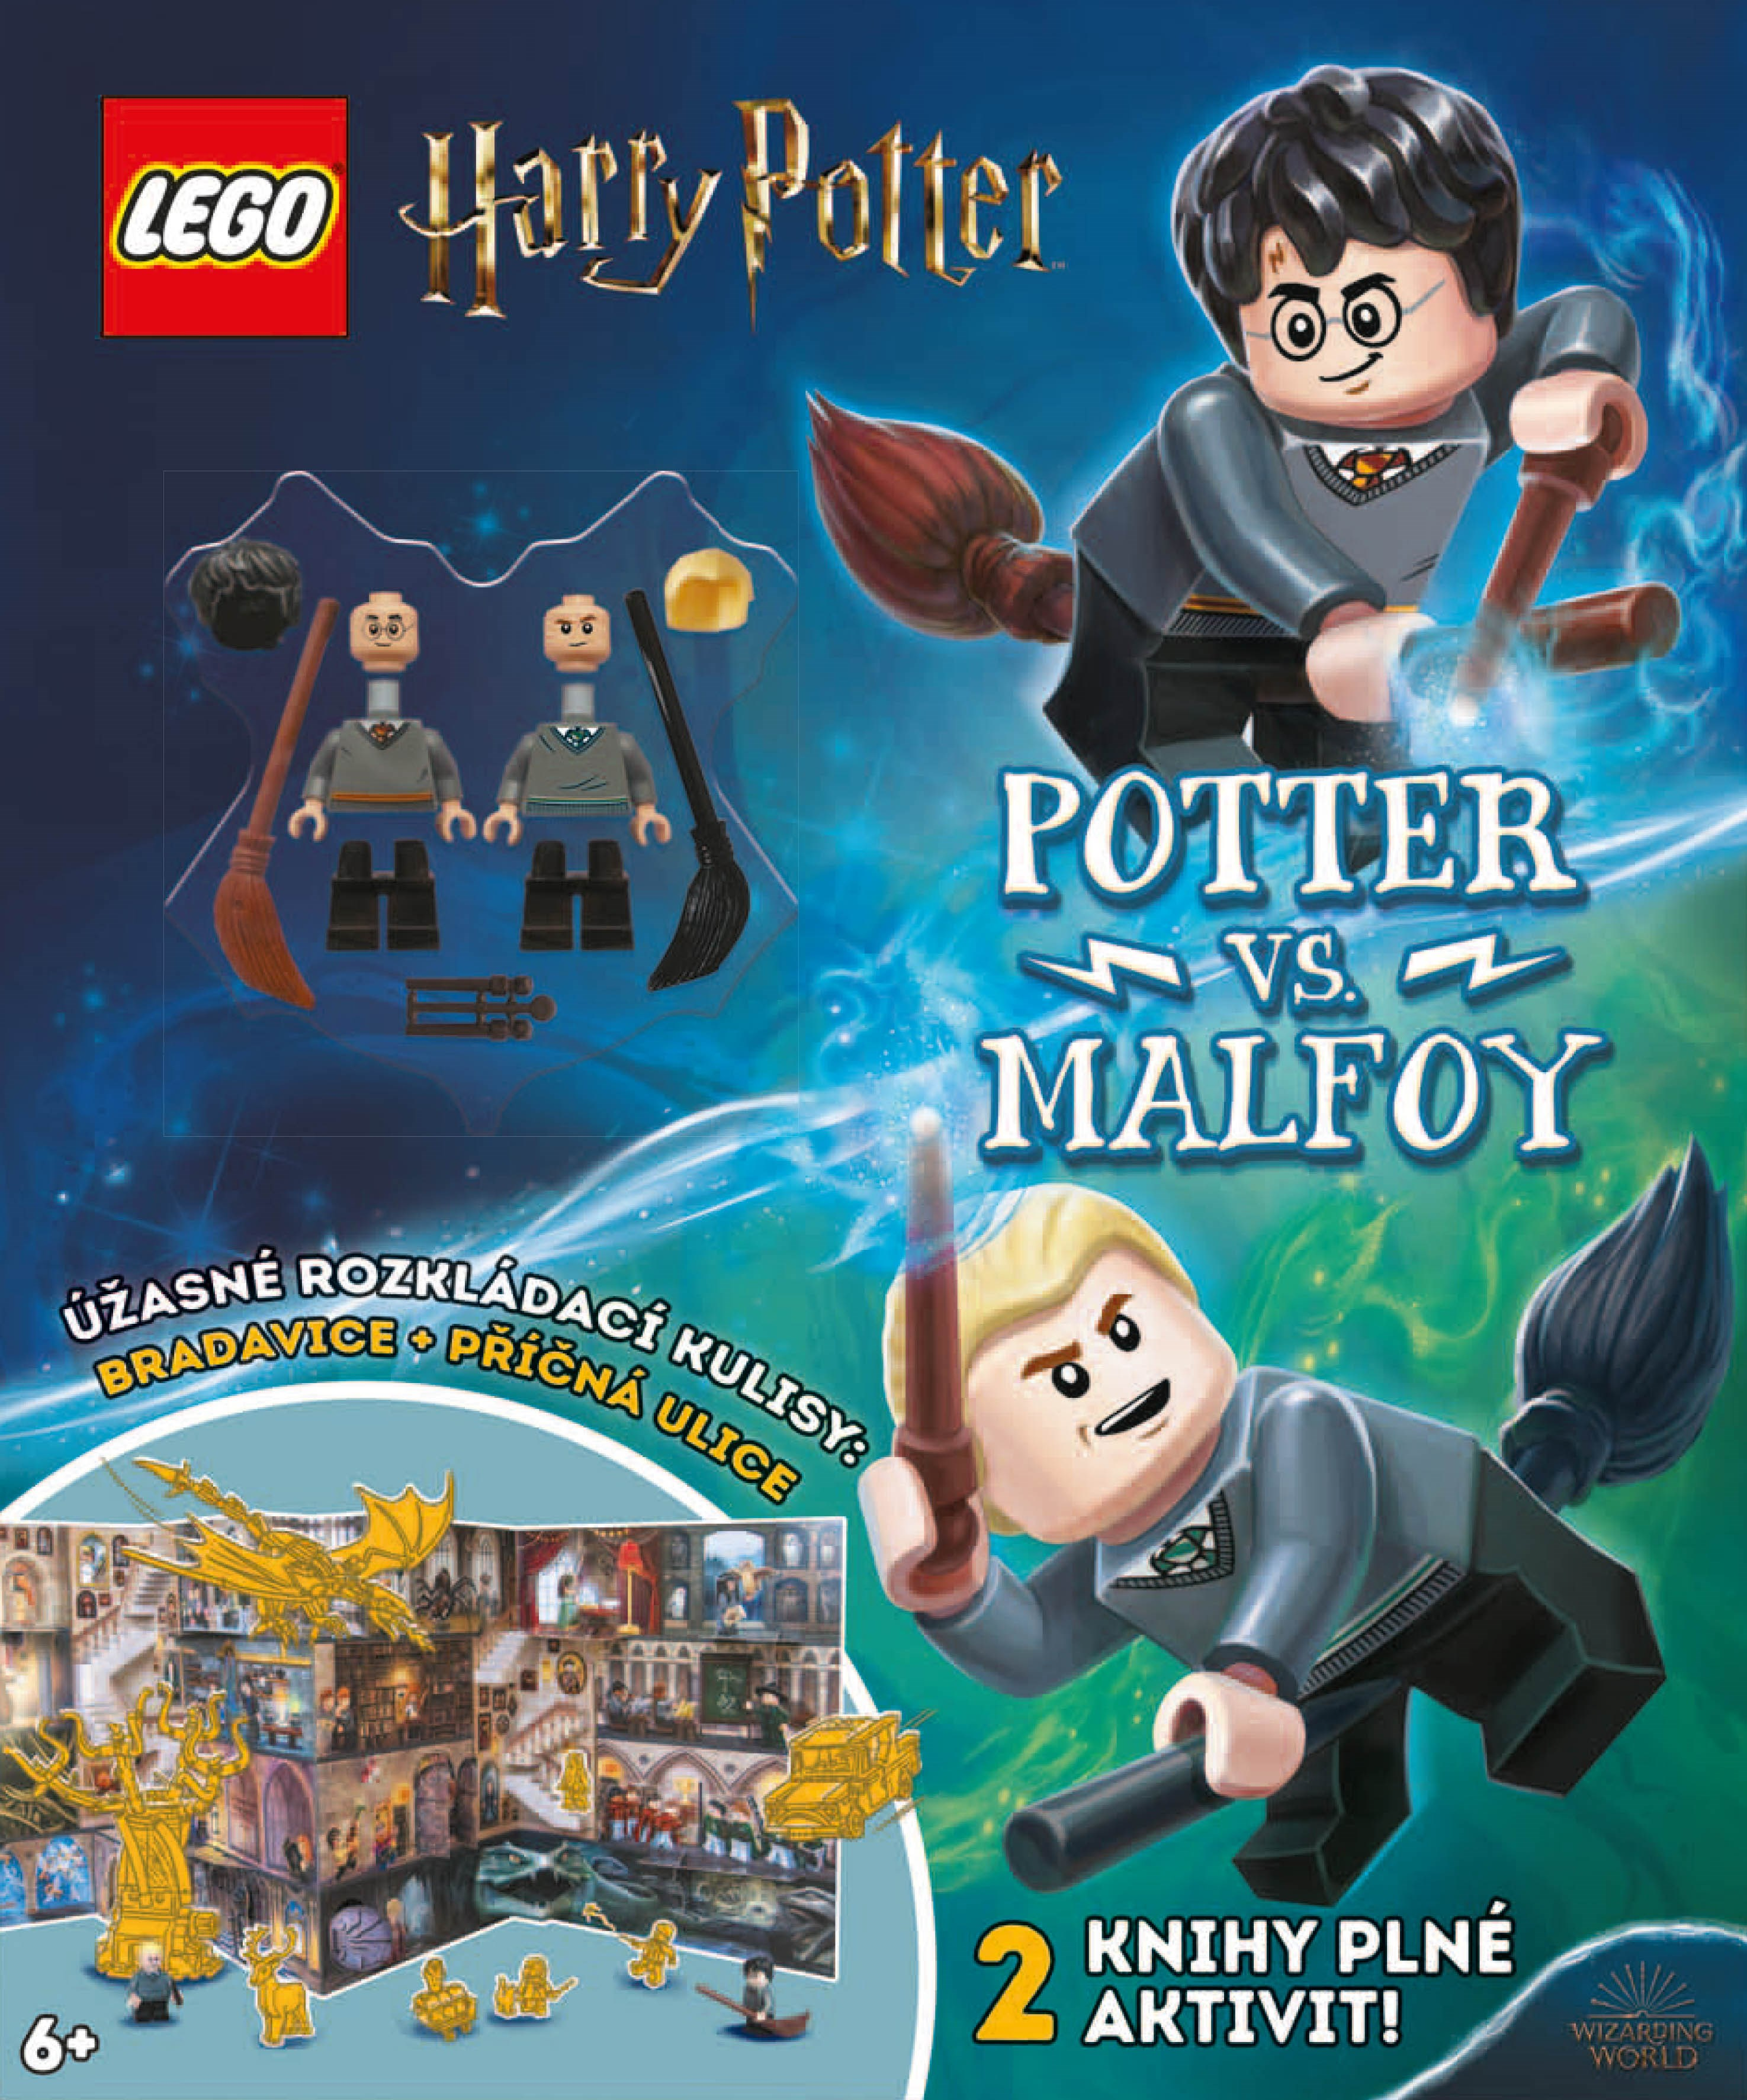 CPRESS LEGO® Harry Potter™ Potter vs. Malfoy - kolektiv